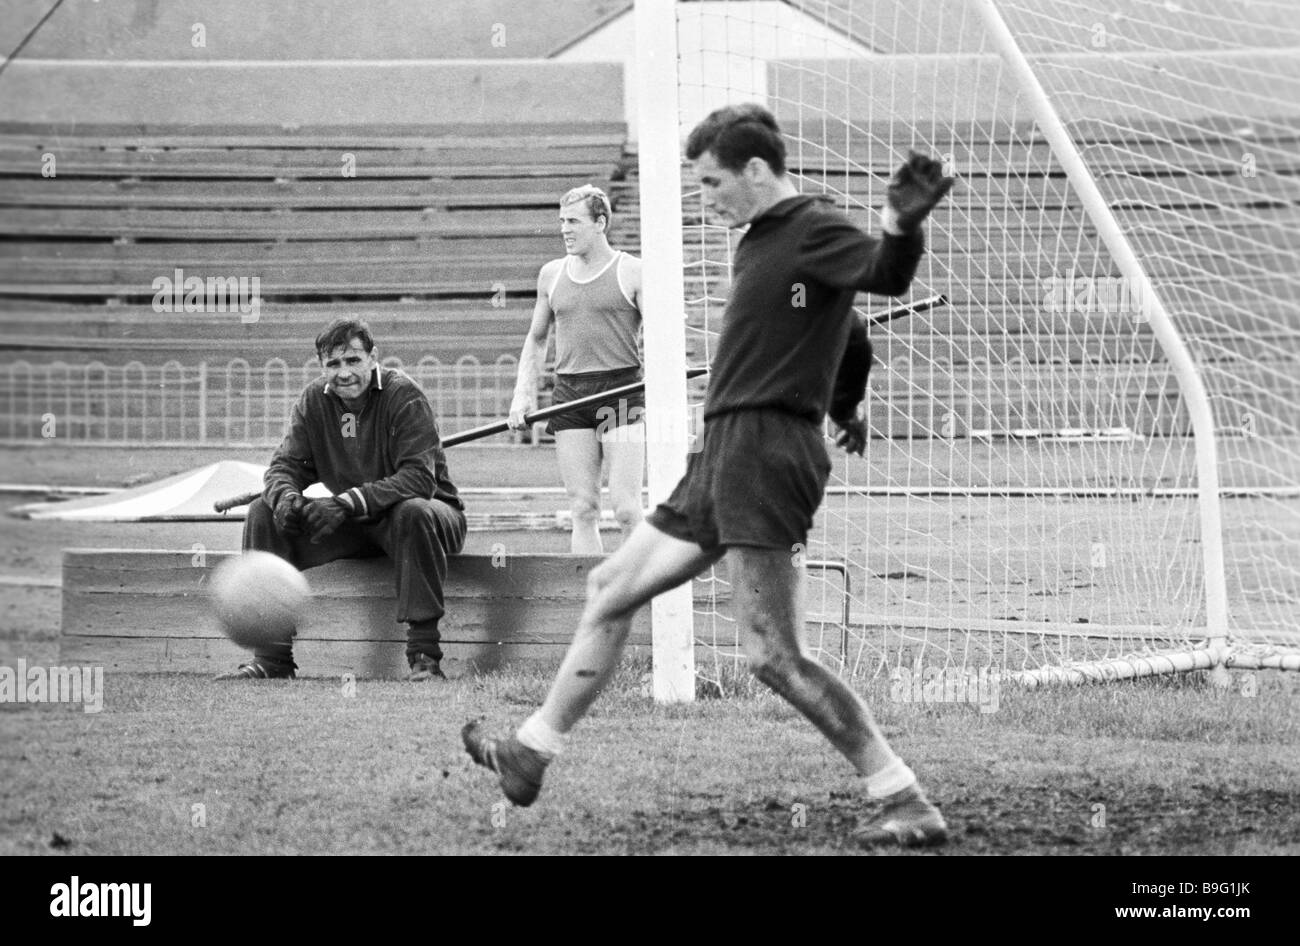 Lev Yashin goal keeper of Dinamo Moscow football team during